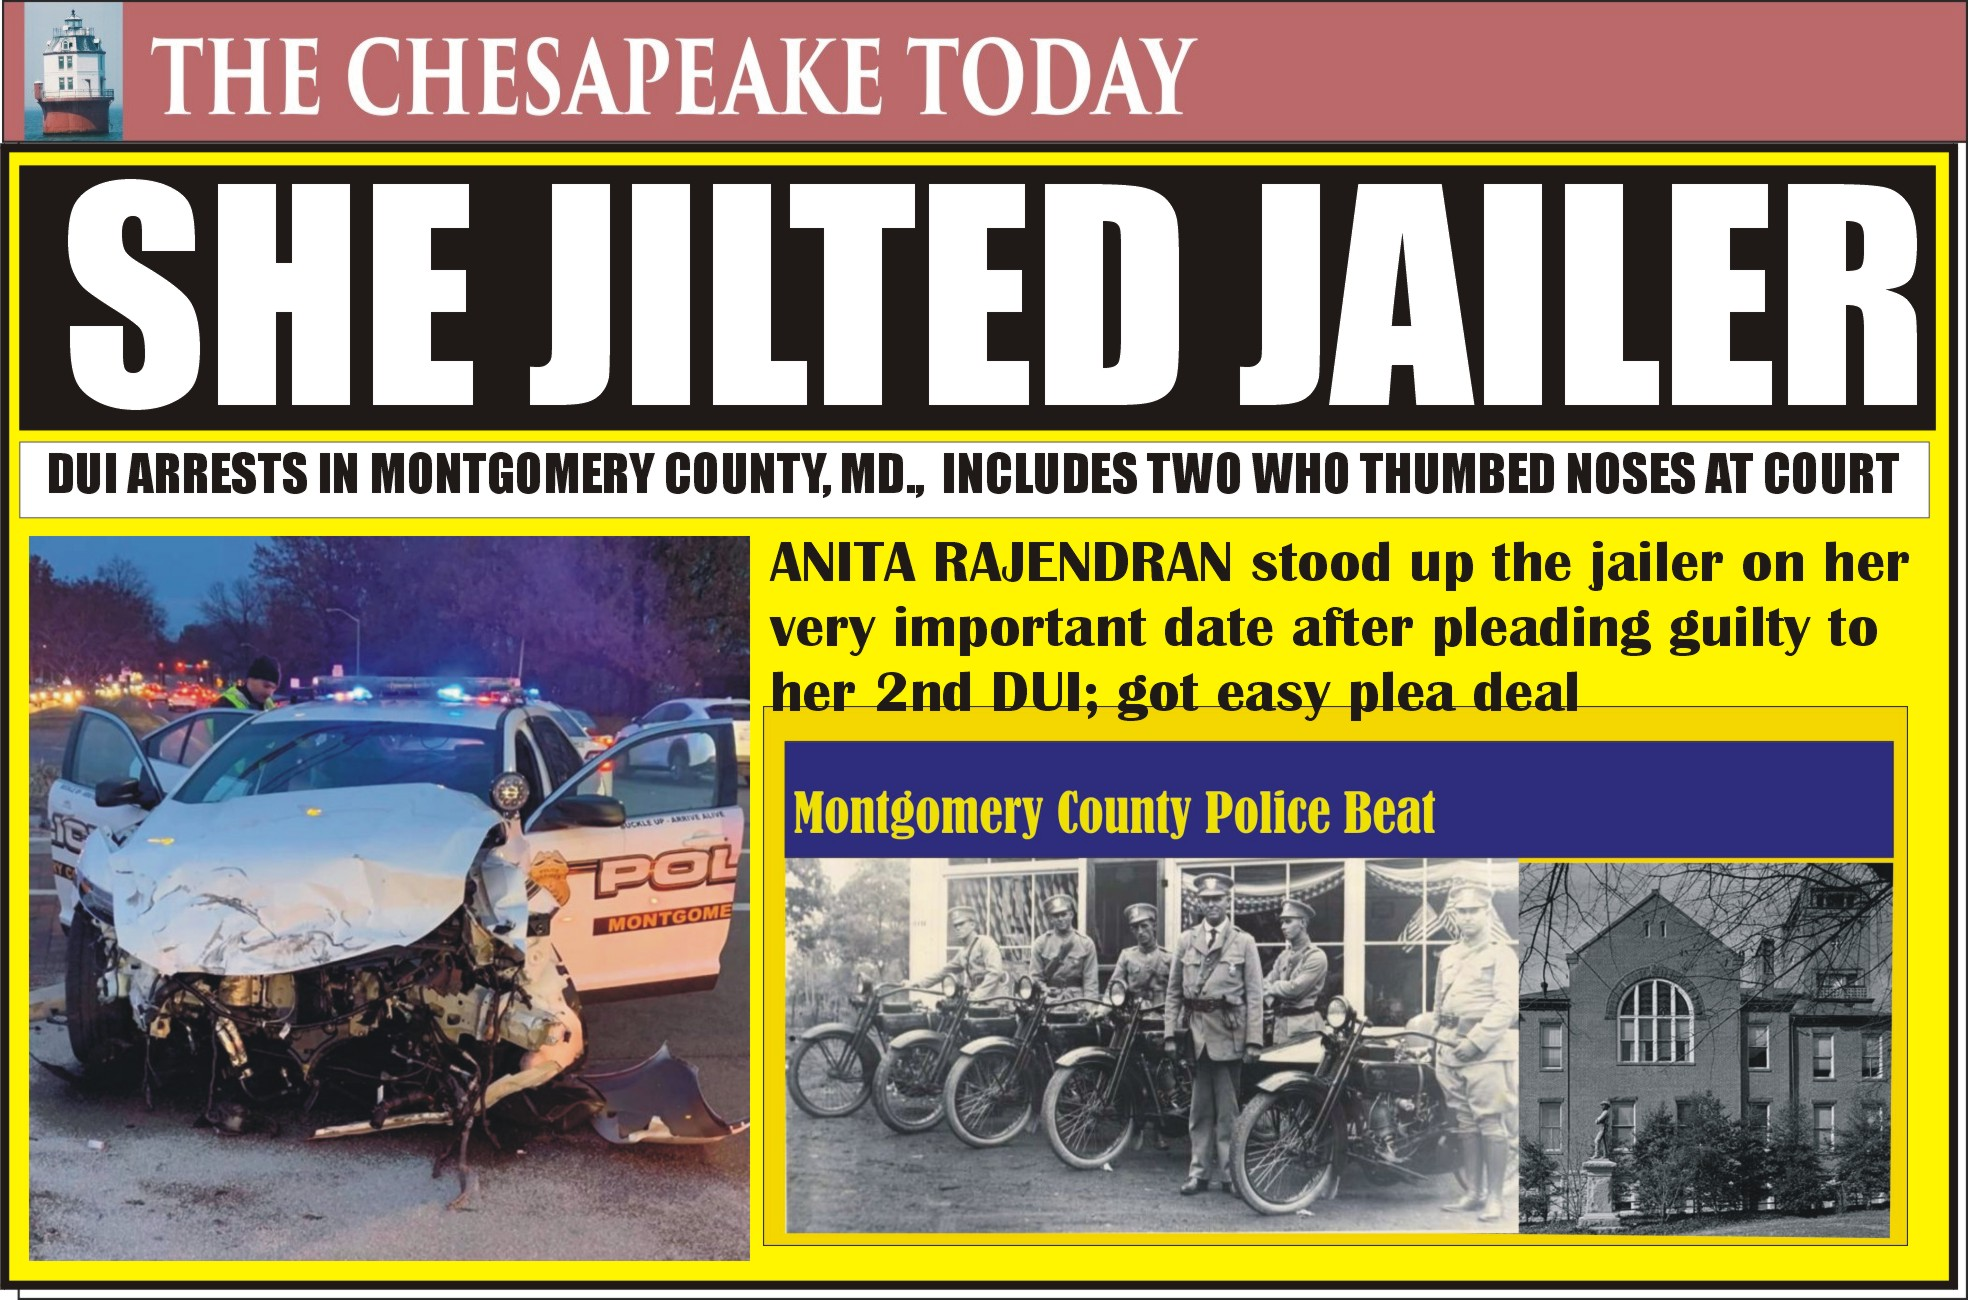 DWI HIT PARADE: JILTED JAILER FOR DATE – Montgomery County Police found repeat DUI offender Anita Rajendran who failed to show up for her date with the jailer